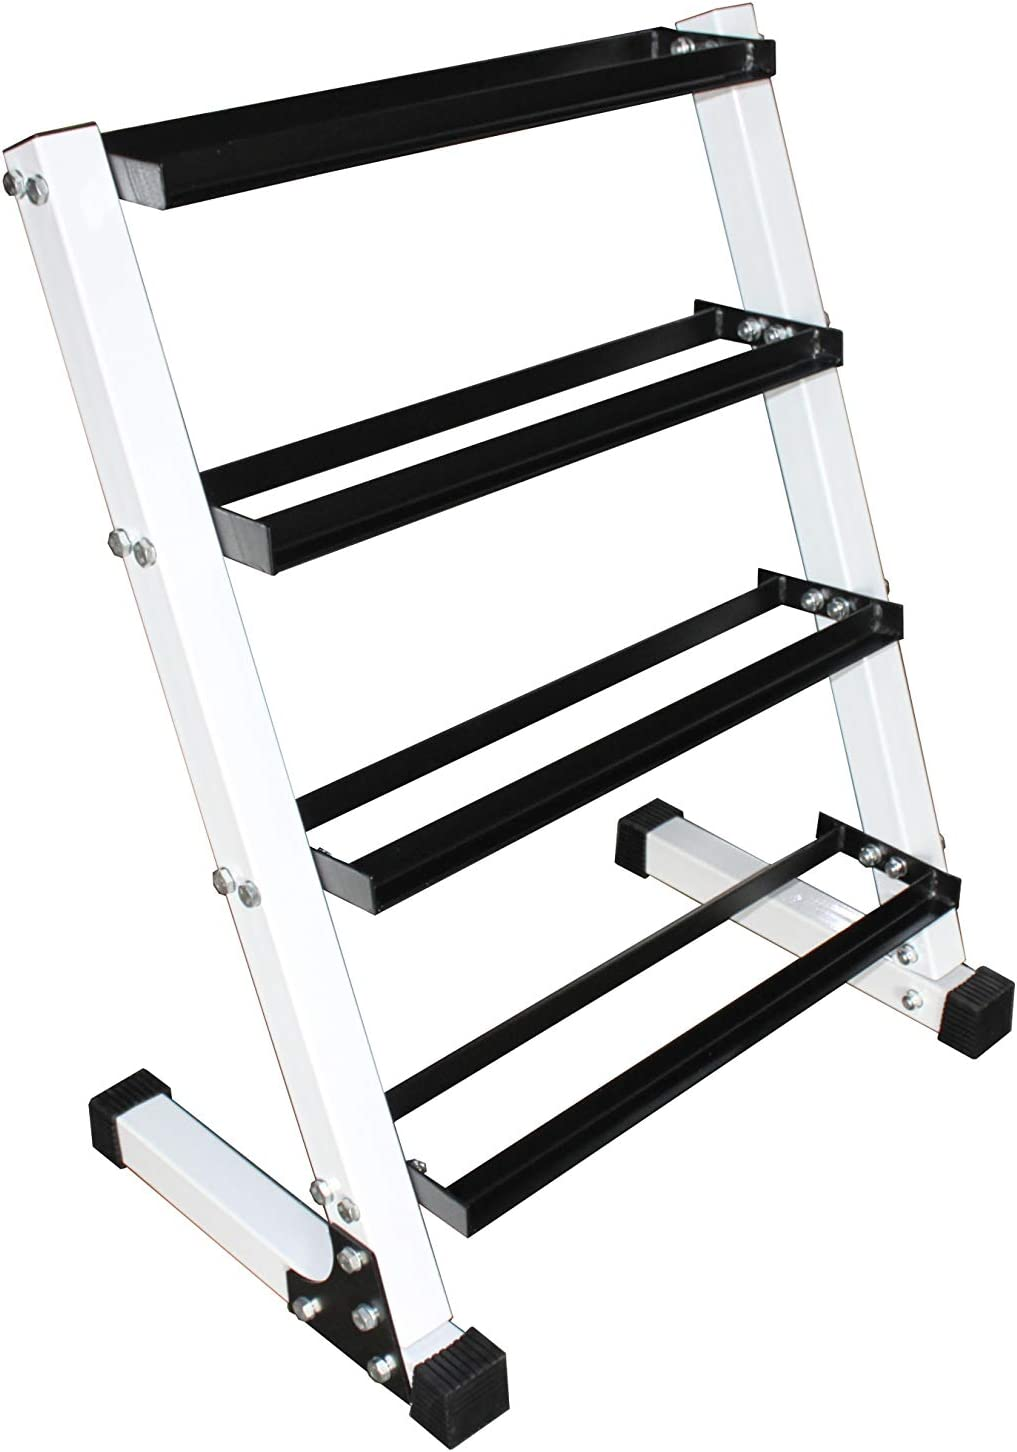 Ader Sporting Goods 4 Tier 24 Dumbbell Rack-Hold 8-9 Pair Dumbbells